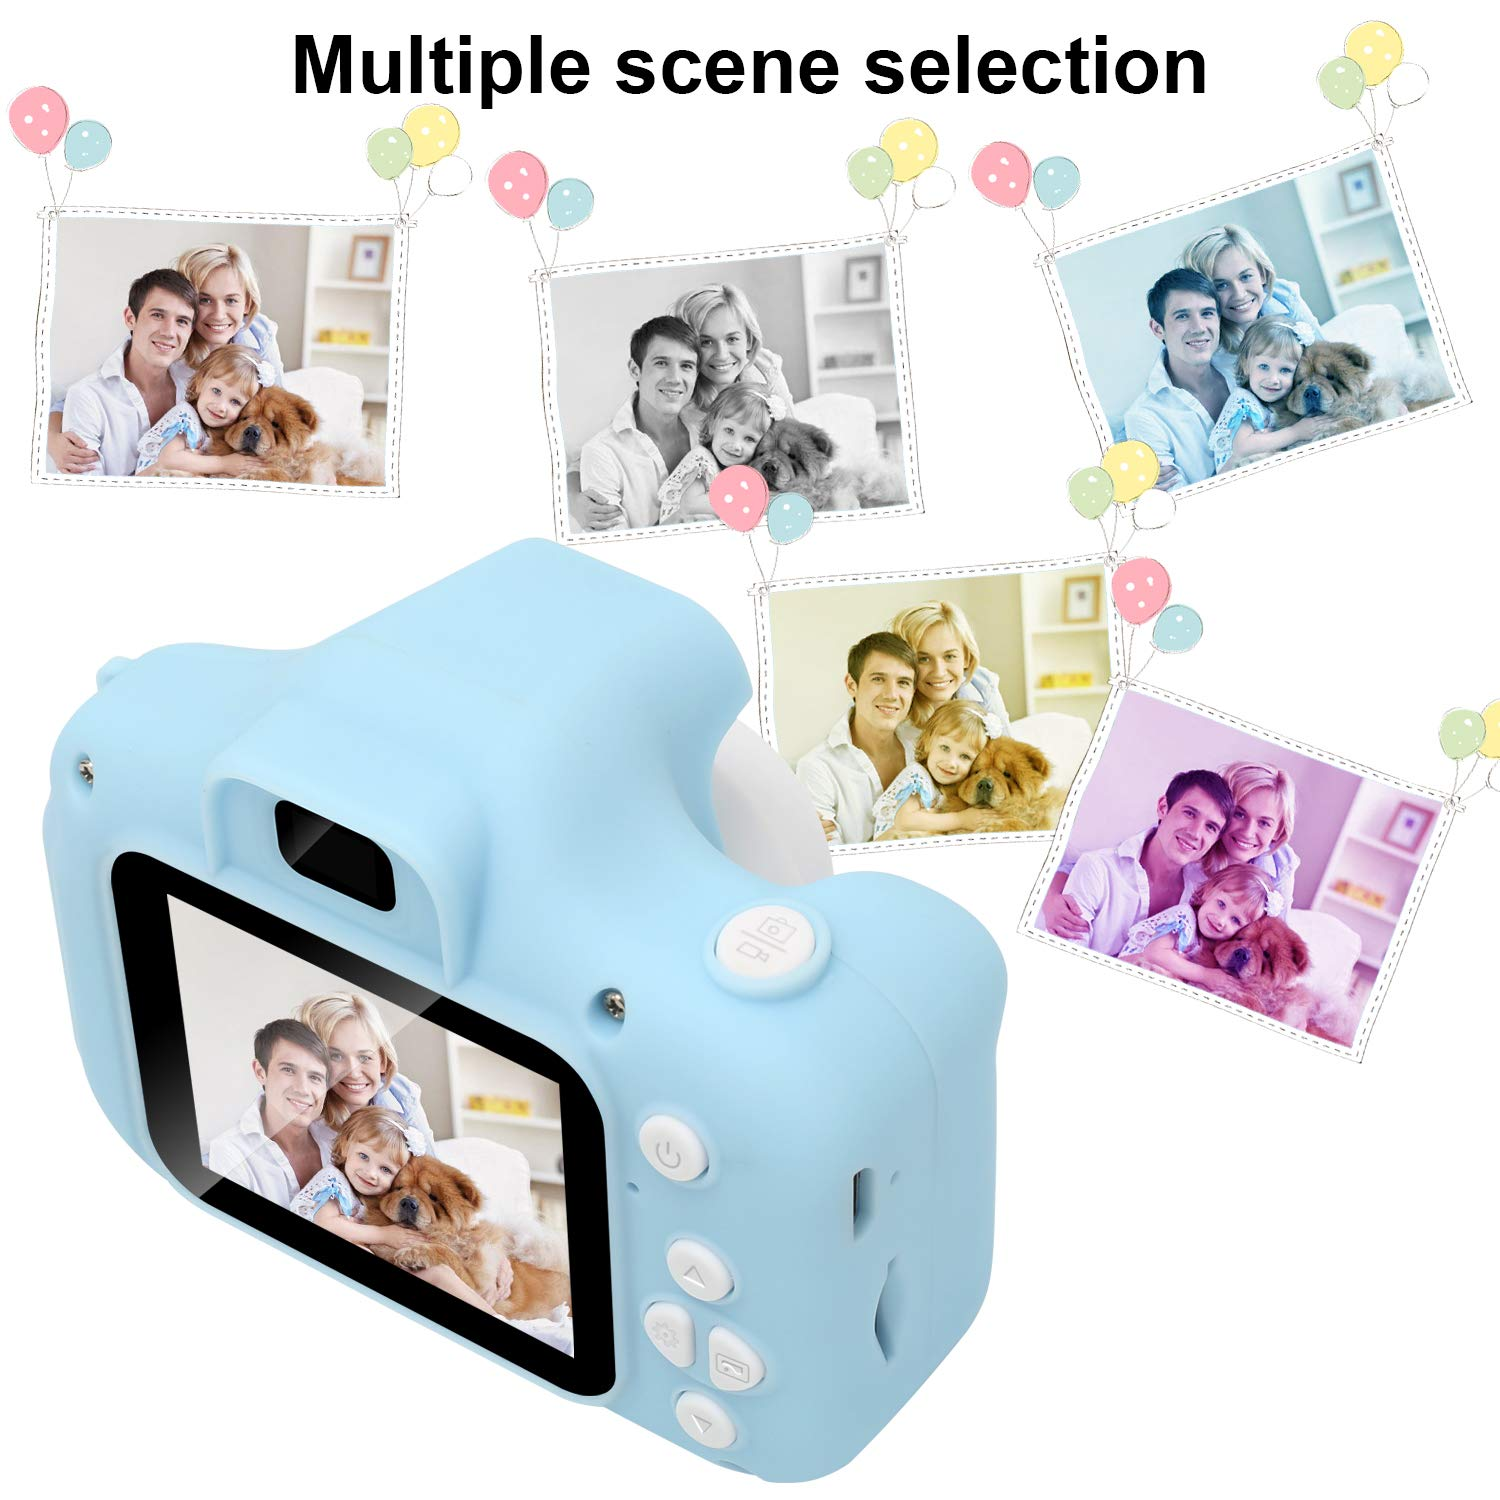 DDGG Kids Digital Camera Toy Camera HD Kids Video Cameras Shockproof Cameras with Soft Silicone Shell Gift for 4-10 Years Old Girls Boys Party Outdoor Play (16G SD Card Included) by DDGG (Image #5)